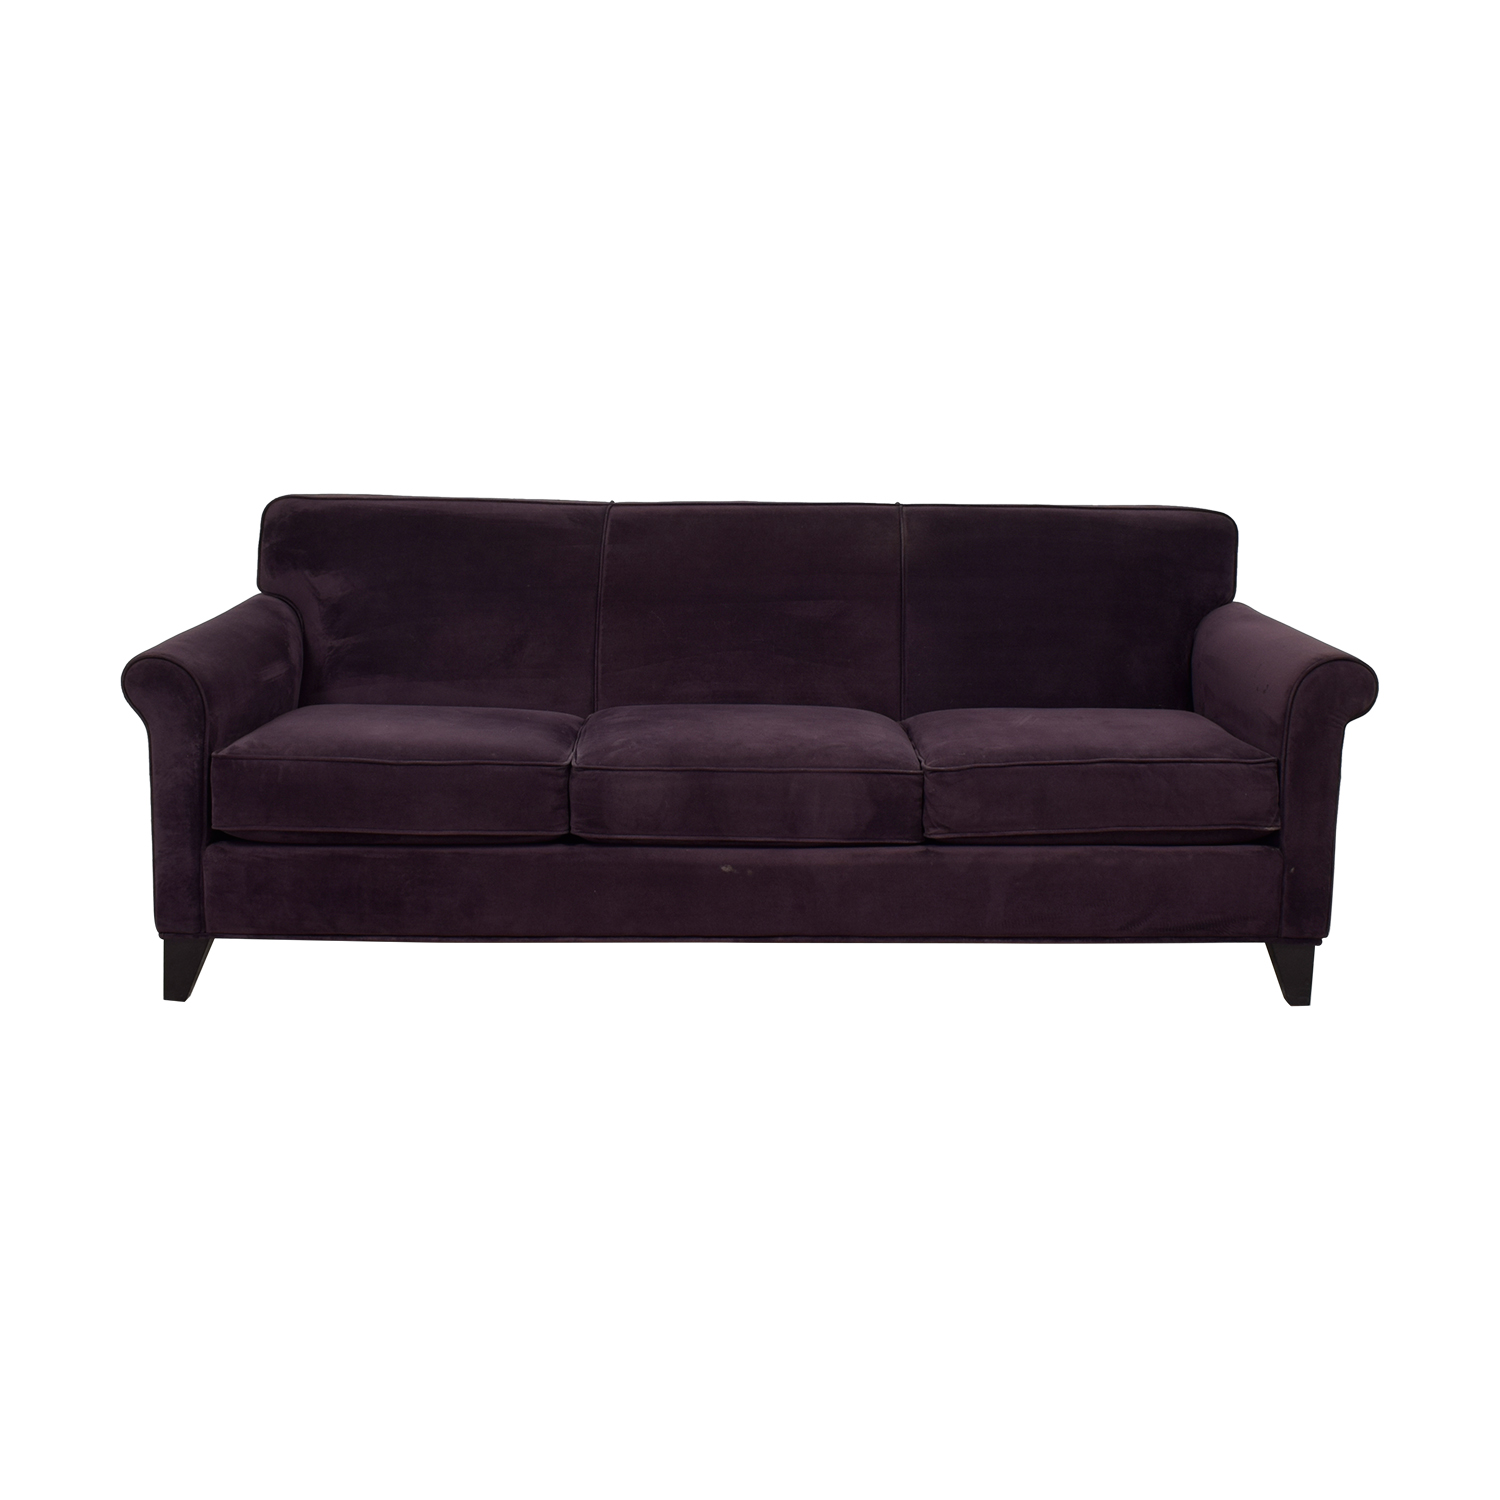 Raymour & Flanigan Raymour & Flanigan Purple Three-Cushion Couch Sofas